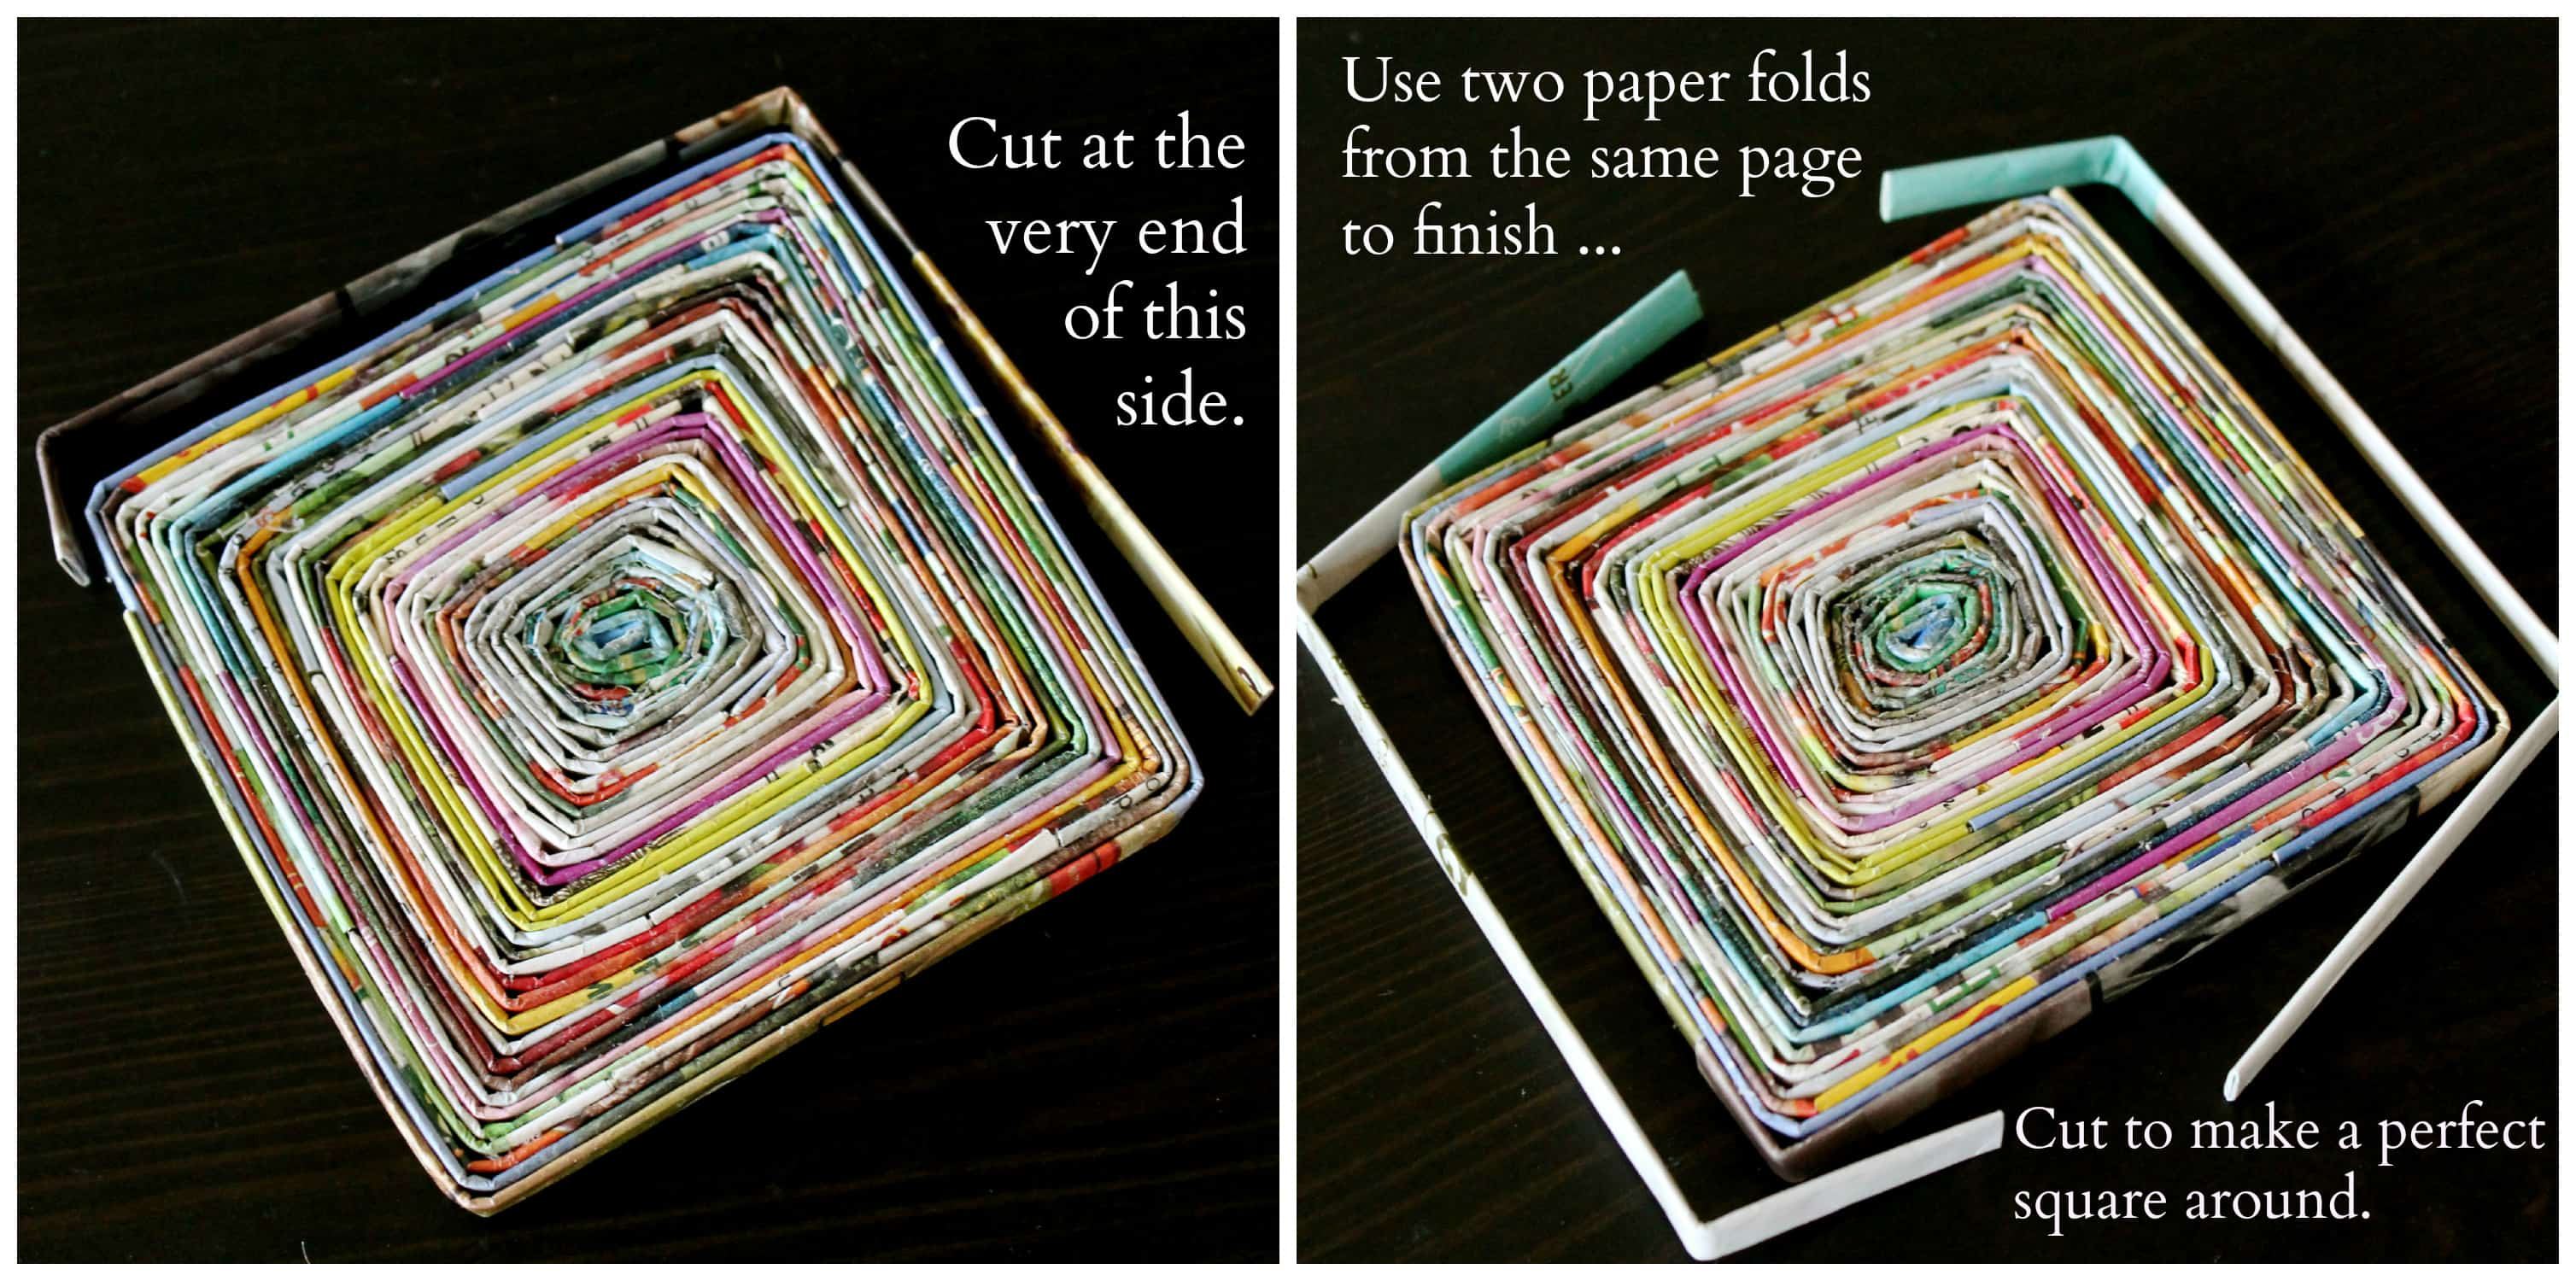 Rolled magazine page coasters